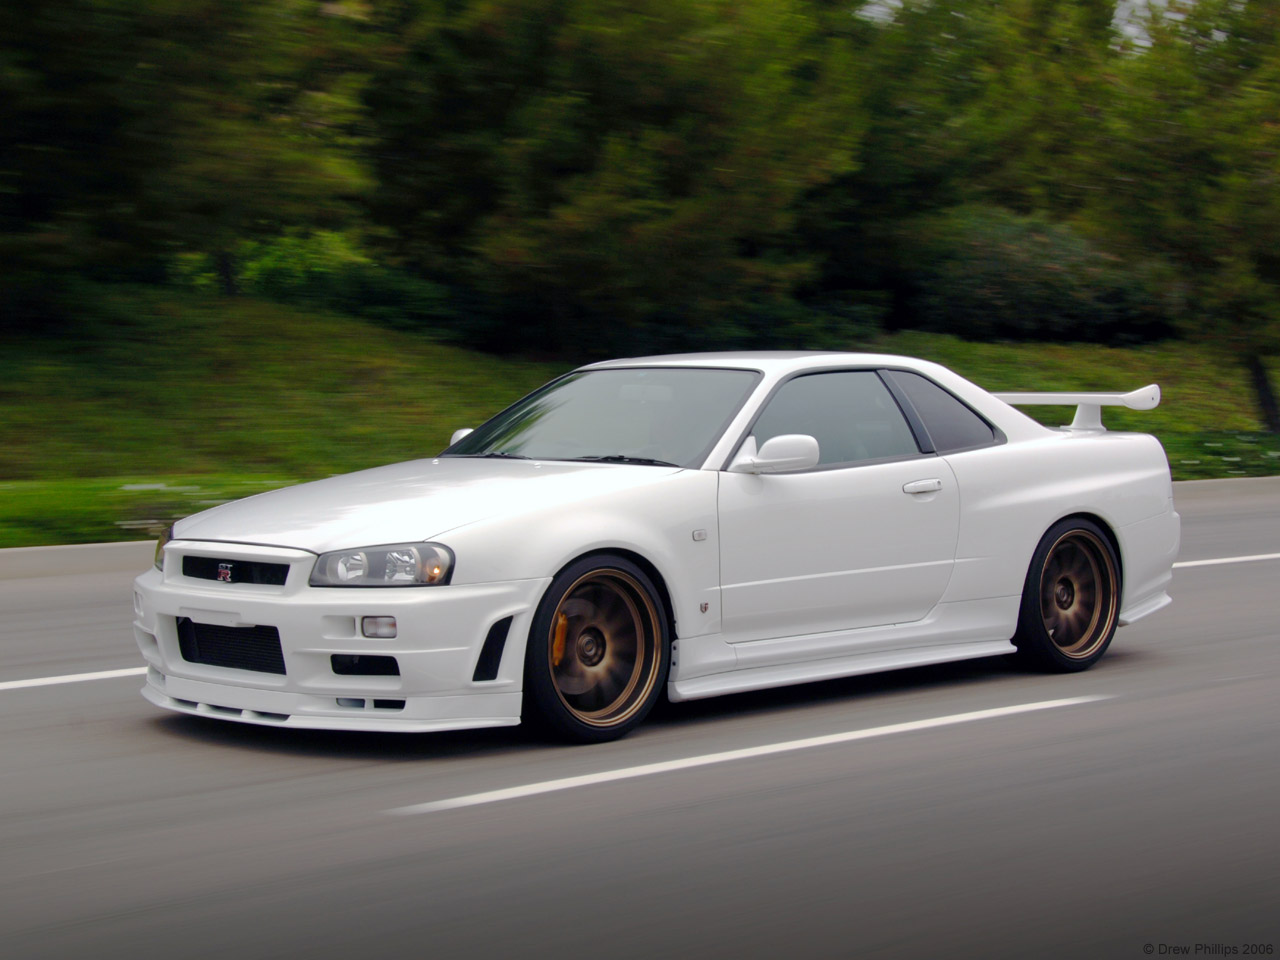 Nissan Skyline Gtr R34 Wallpaper World Of Cars 1280x960